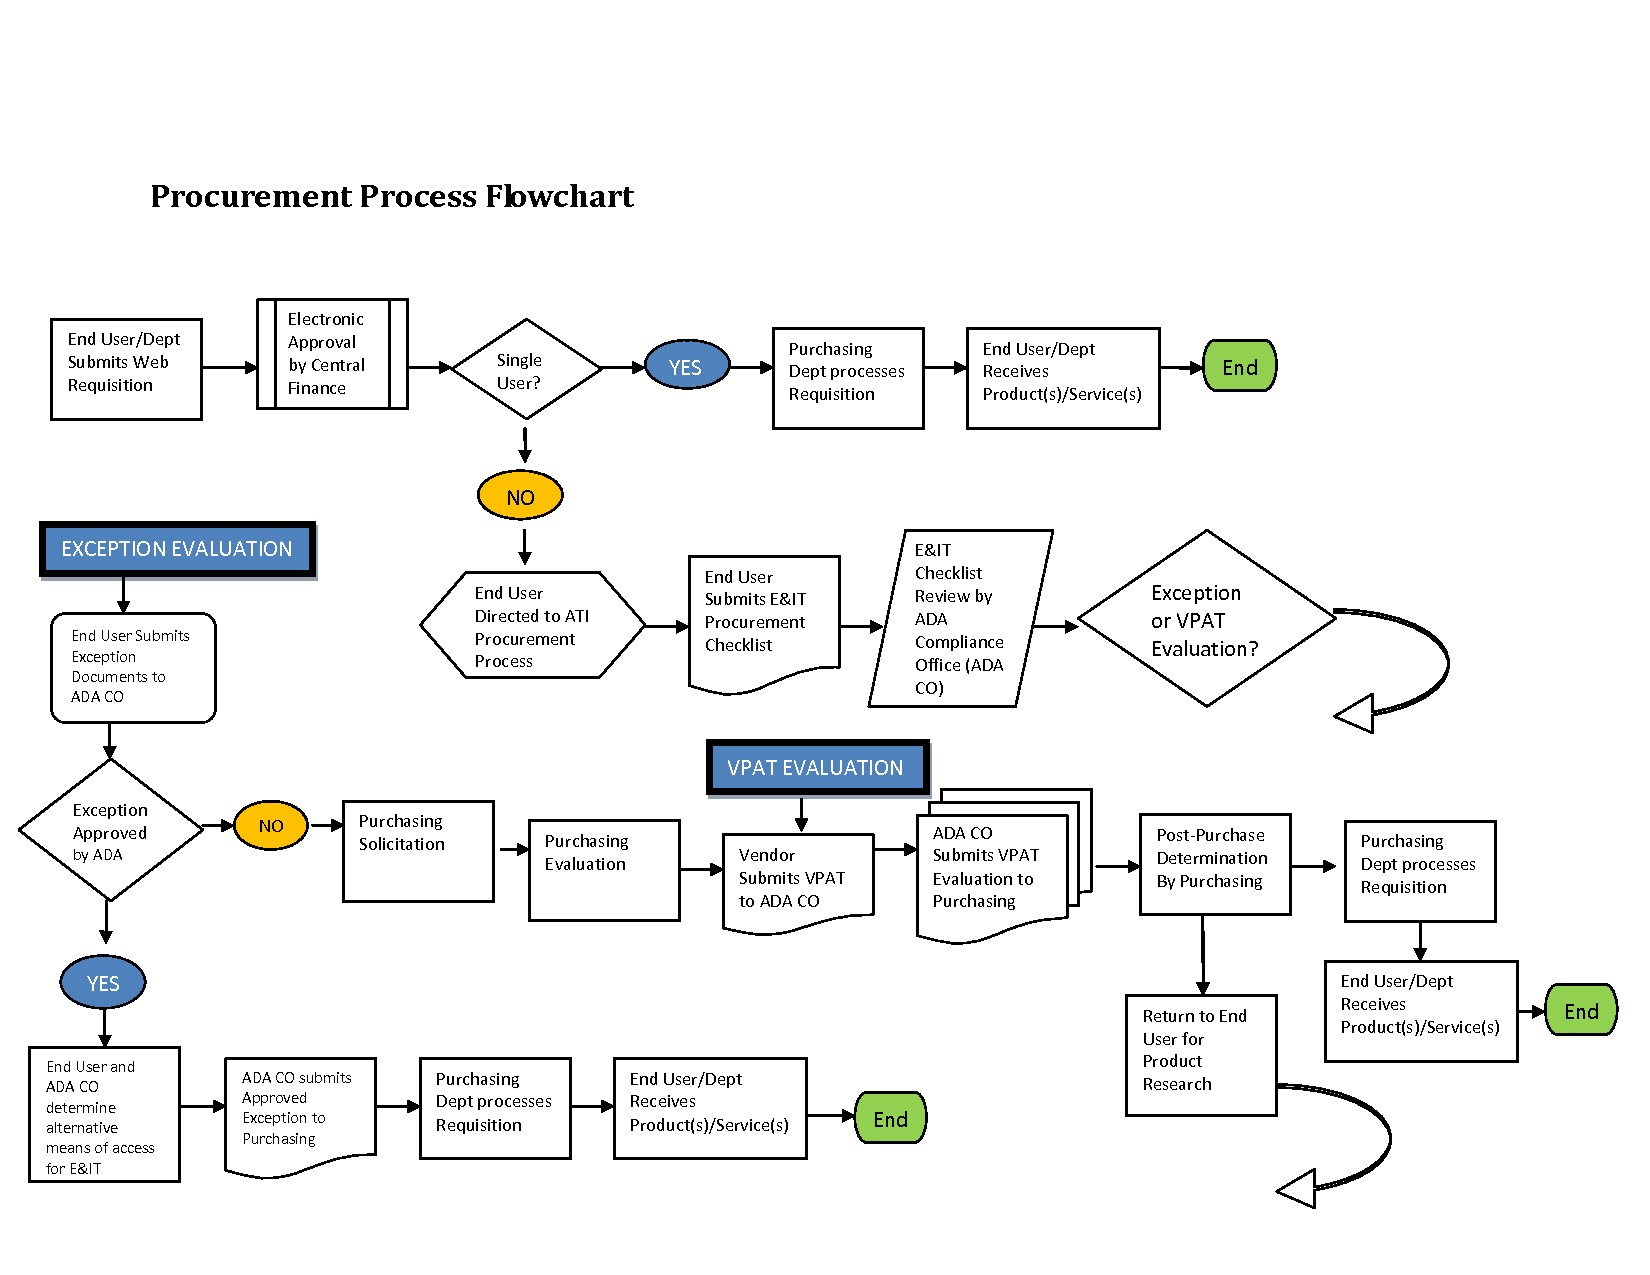 Engineering Design Process Diagram 12 Awesome Procurement Process Flow Chart Template Images Of Engineering Design Process Diagram